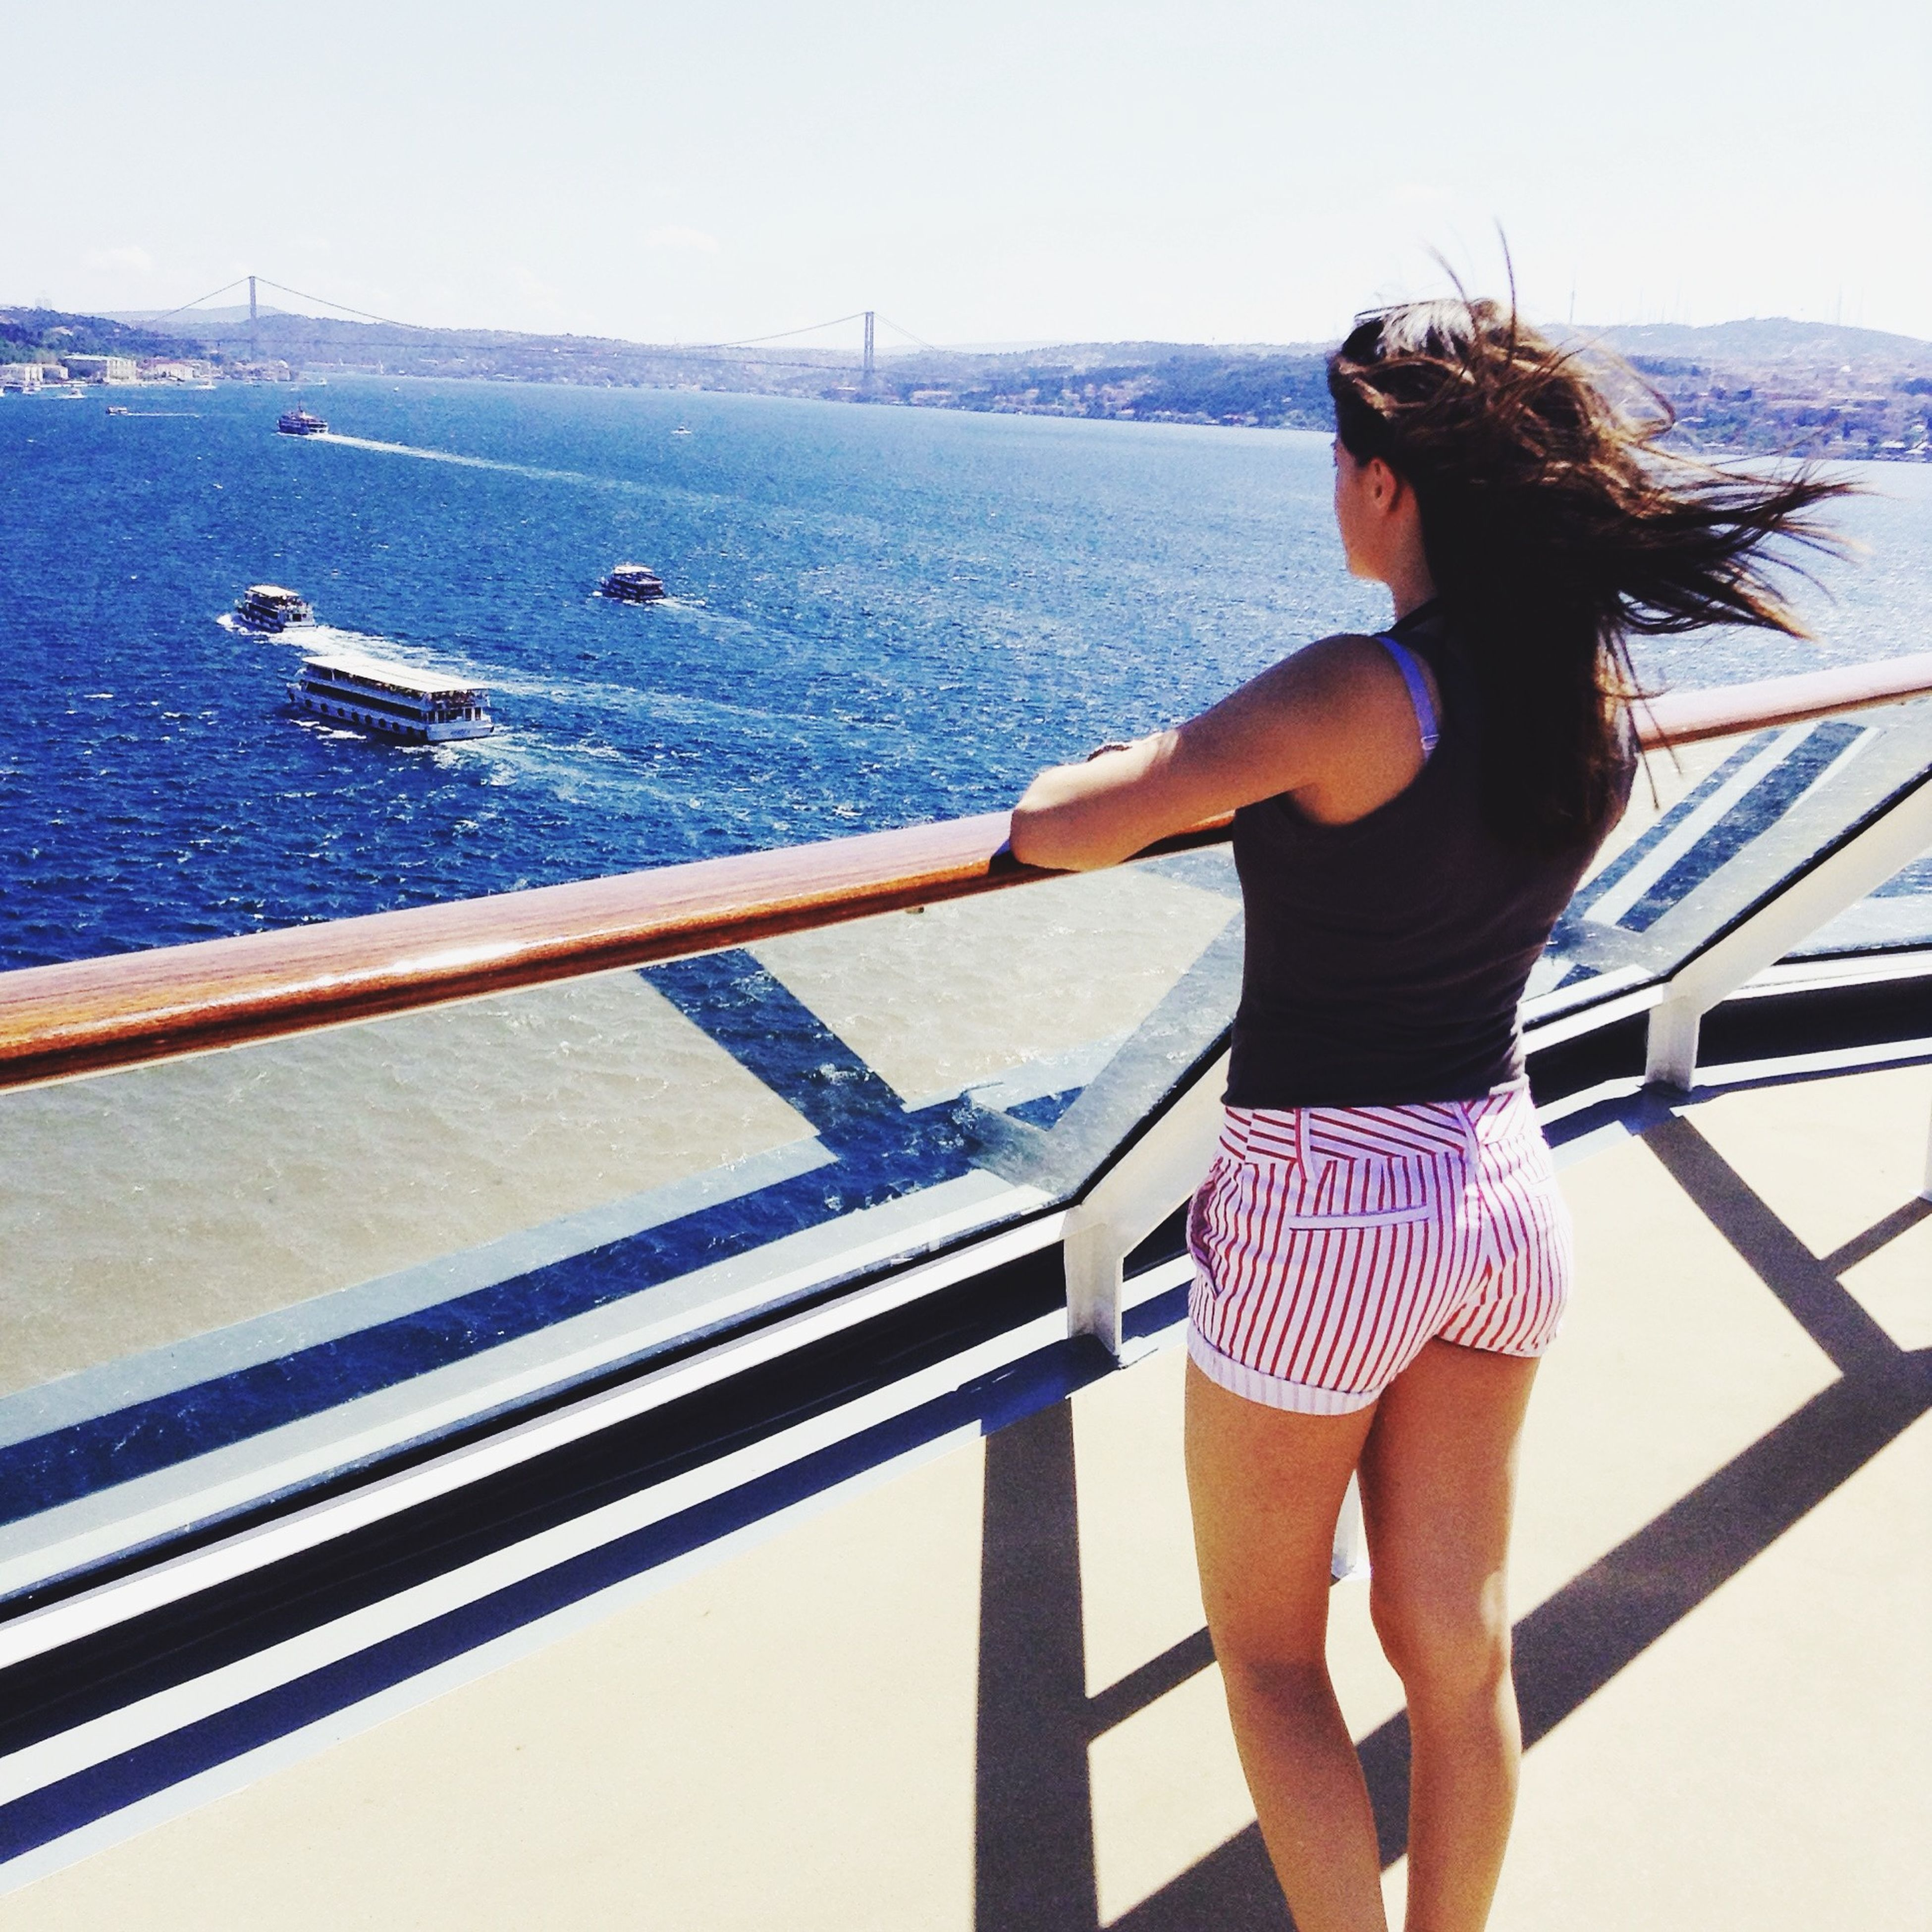 sea, lifestyles, water, railing, leisure activity, standing, young adult, full length, clear sky, casual clothing, rear view, three quarter length, young women, nautical vessel, person, sky, transportation, side view